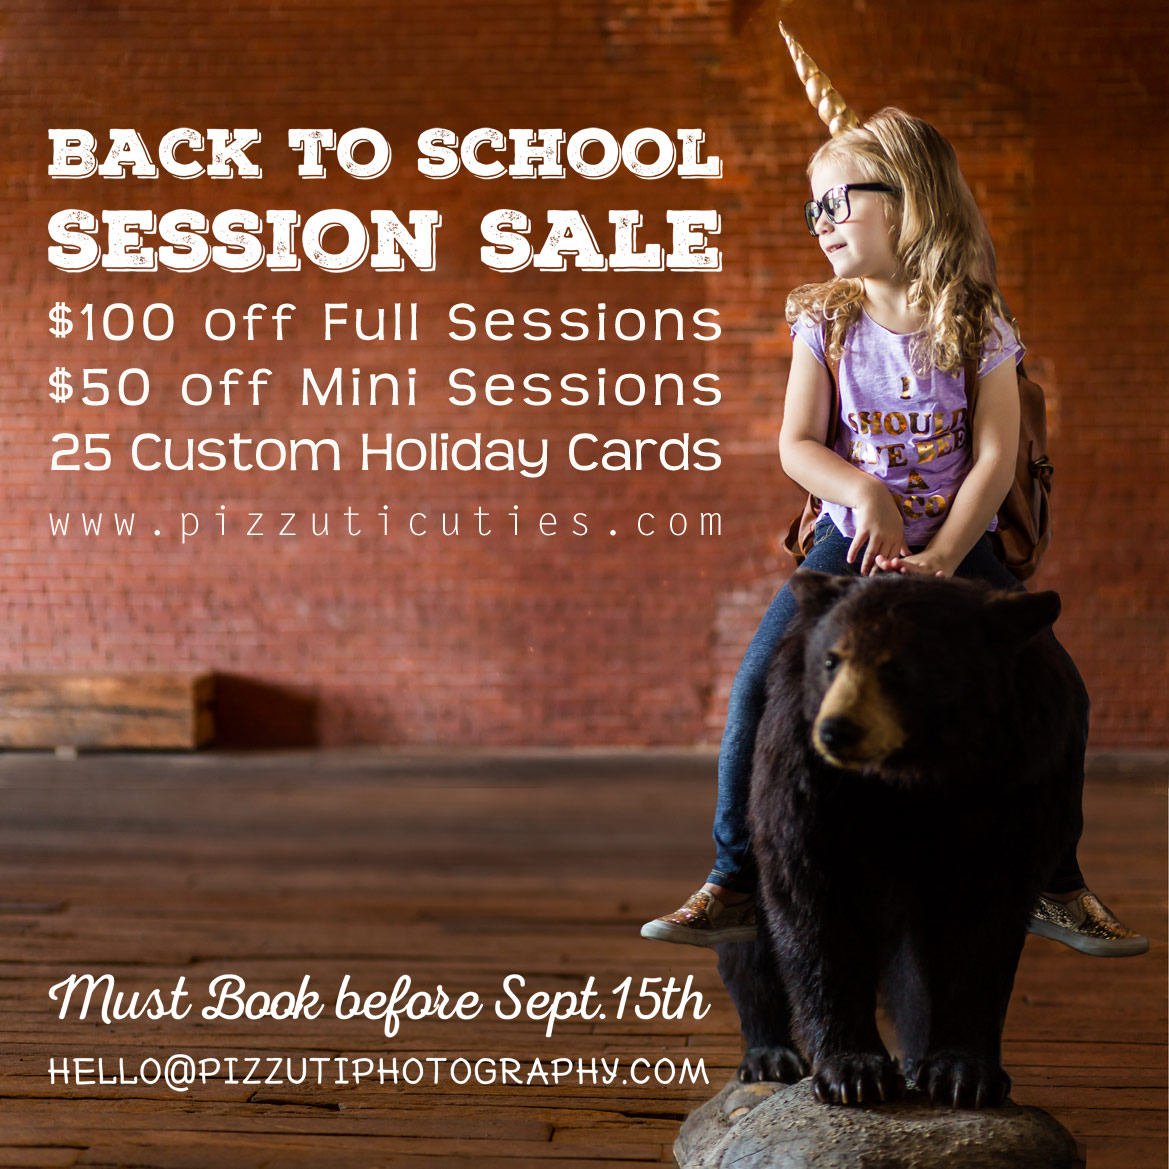 Back to School Session Sale